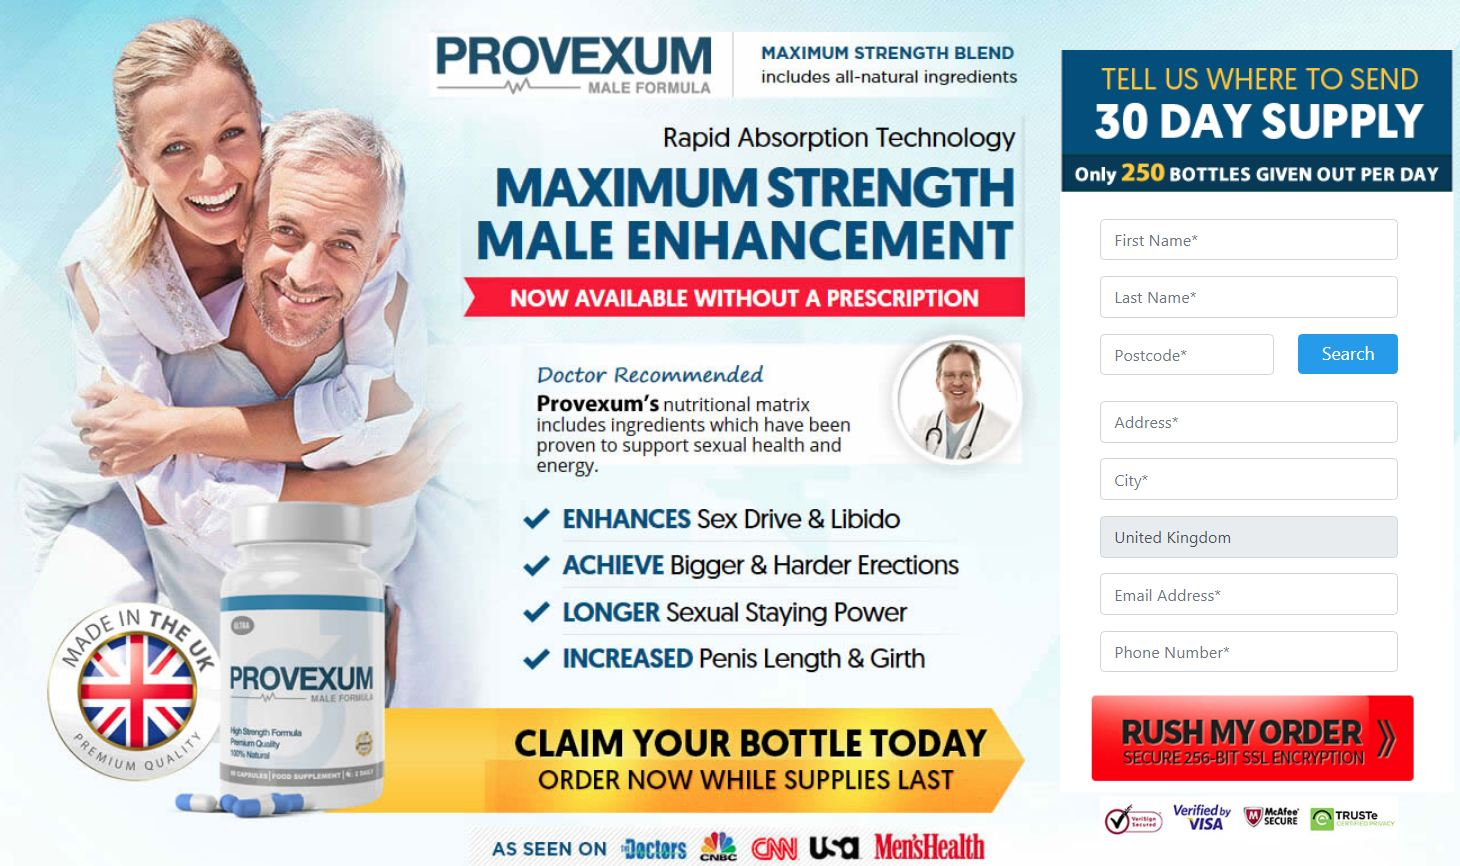 Provexum Male Enhancement Formula